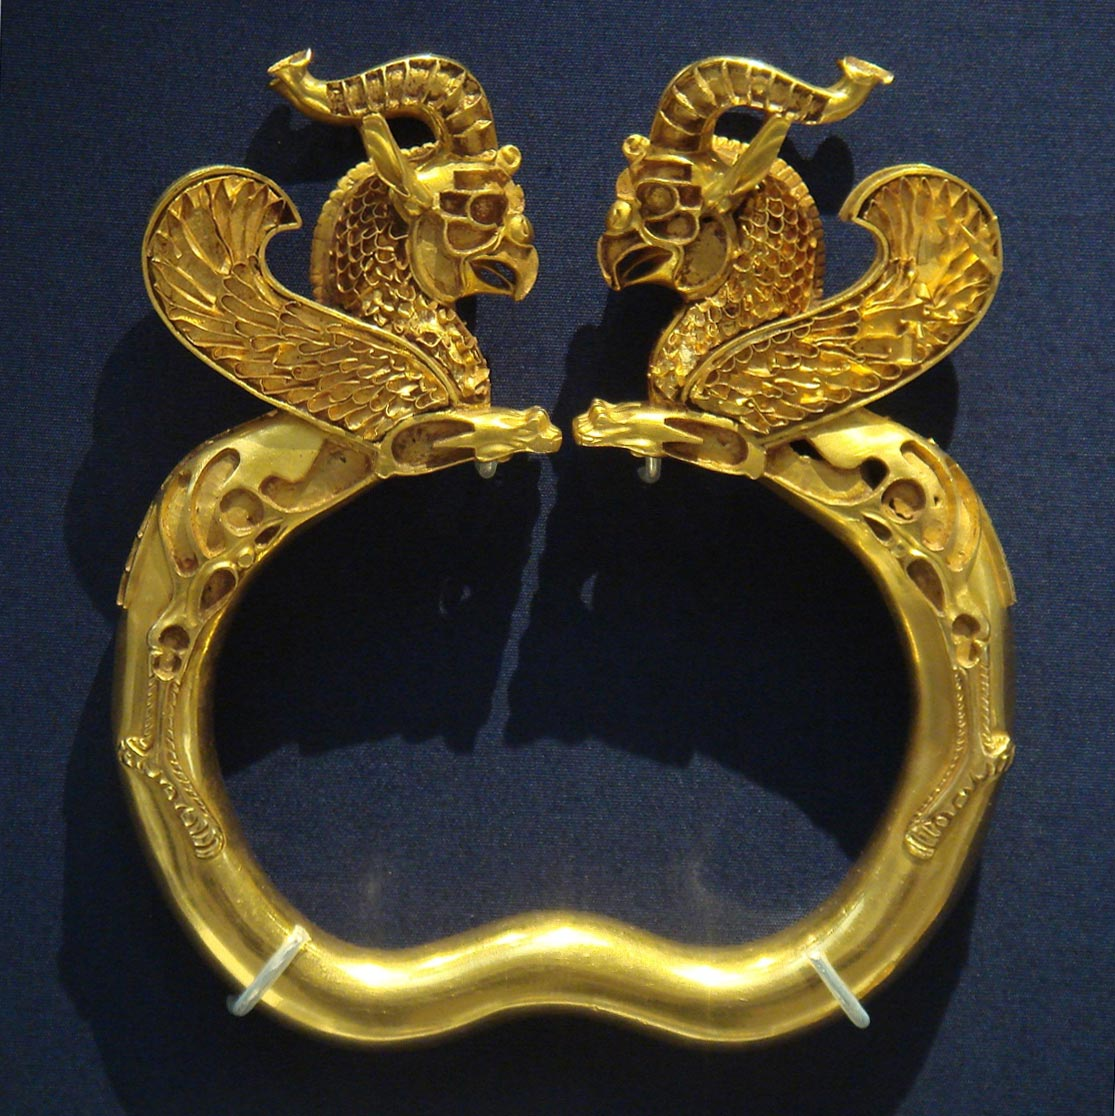 This gold bracelet was probably given as a gift of tribute to the royal court. It was one of about 170 gold and silver artifacts from the Archaemenid Empire found near the Oxus River in Tajikistan. The figures are two griffins, powerful mythical creatures, with the heads of eagles and bodies of lions, that the Archaemenids believed provided protection against evil.  (Photo via Wikipedia)